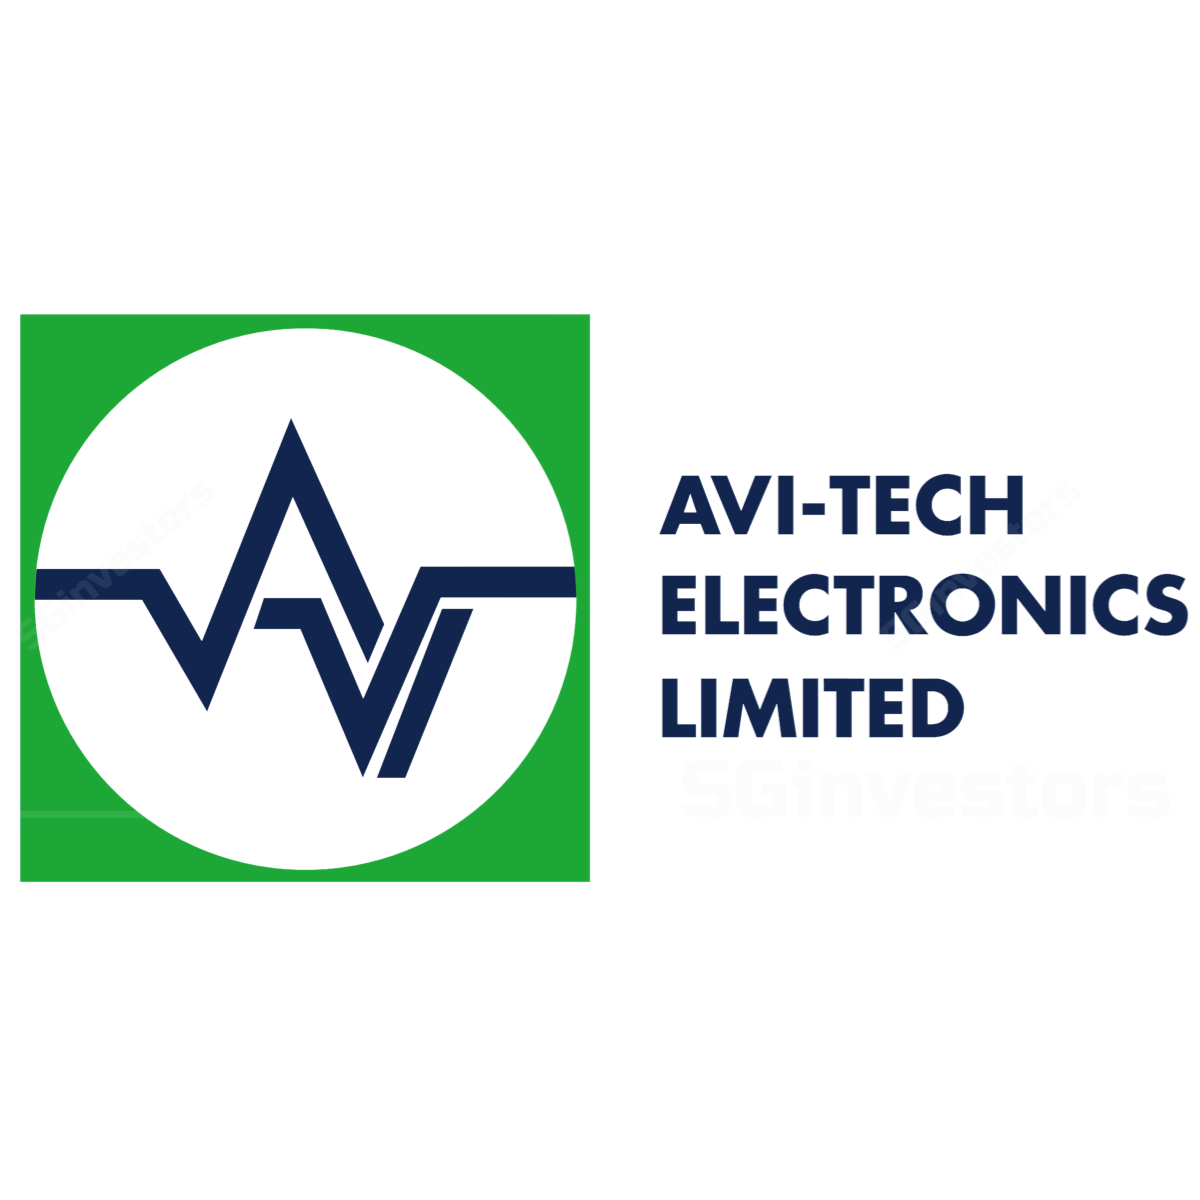 Avi-Tech Electronics - RHB Securities Research 2018-09-12: Sector Headwinds To Continue